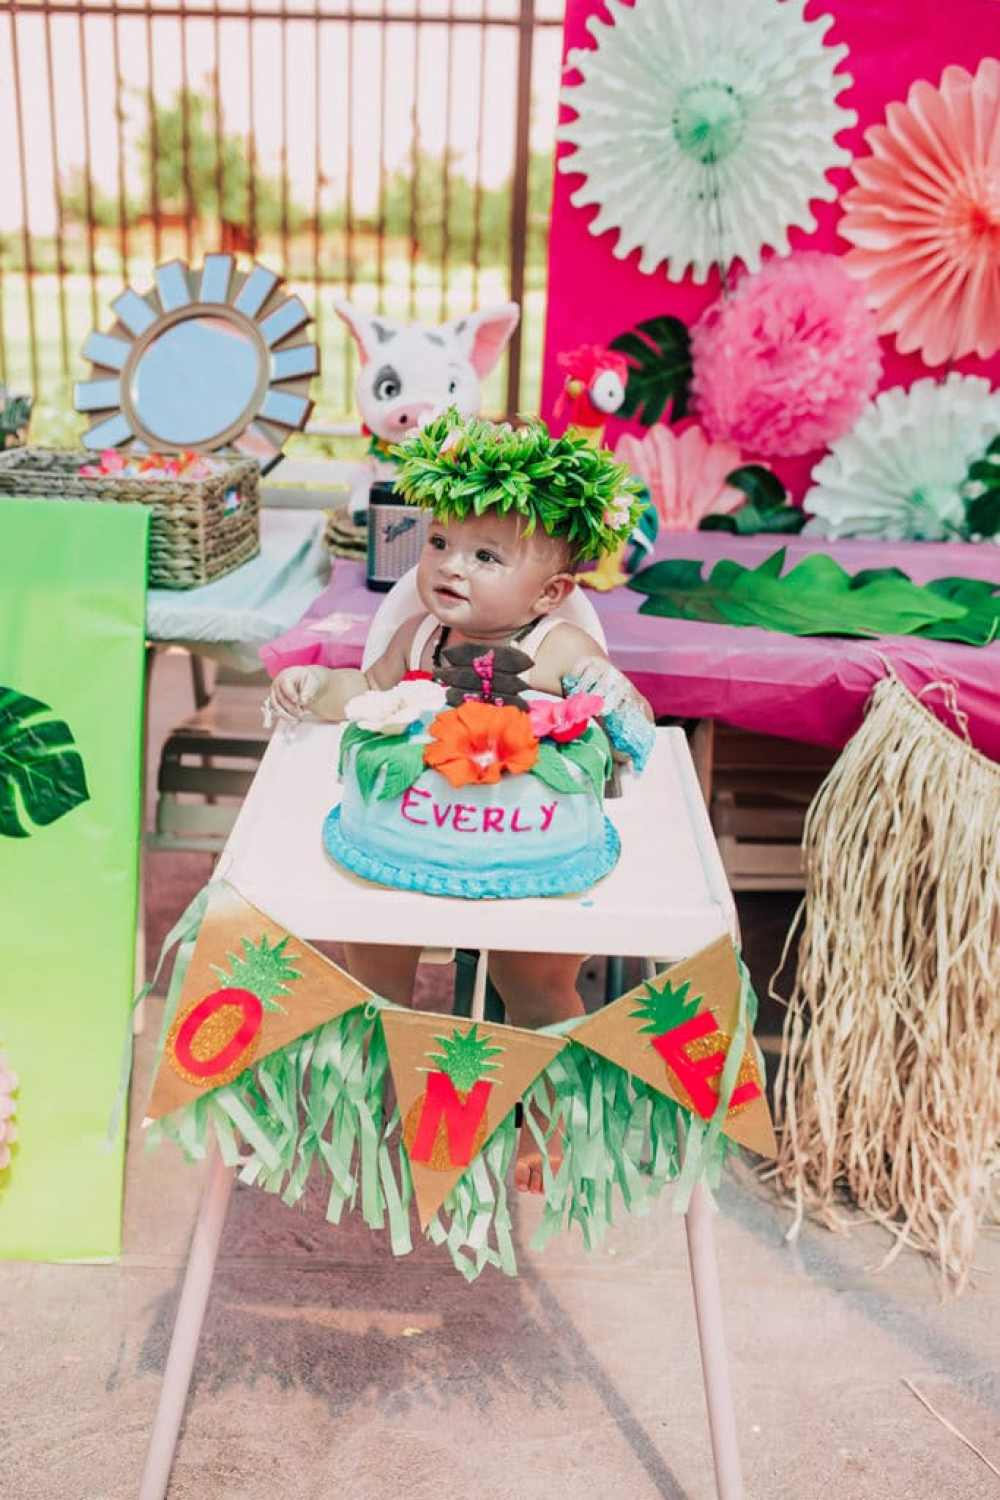 Stupendous Everlys Moana Inspired First Birthday Party Vandi Fair Funny Birthday Cards Online Inifodamsfinfo